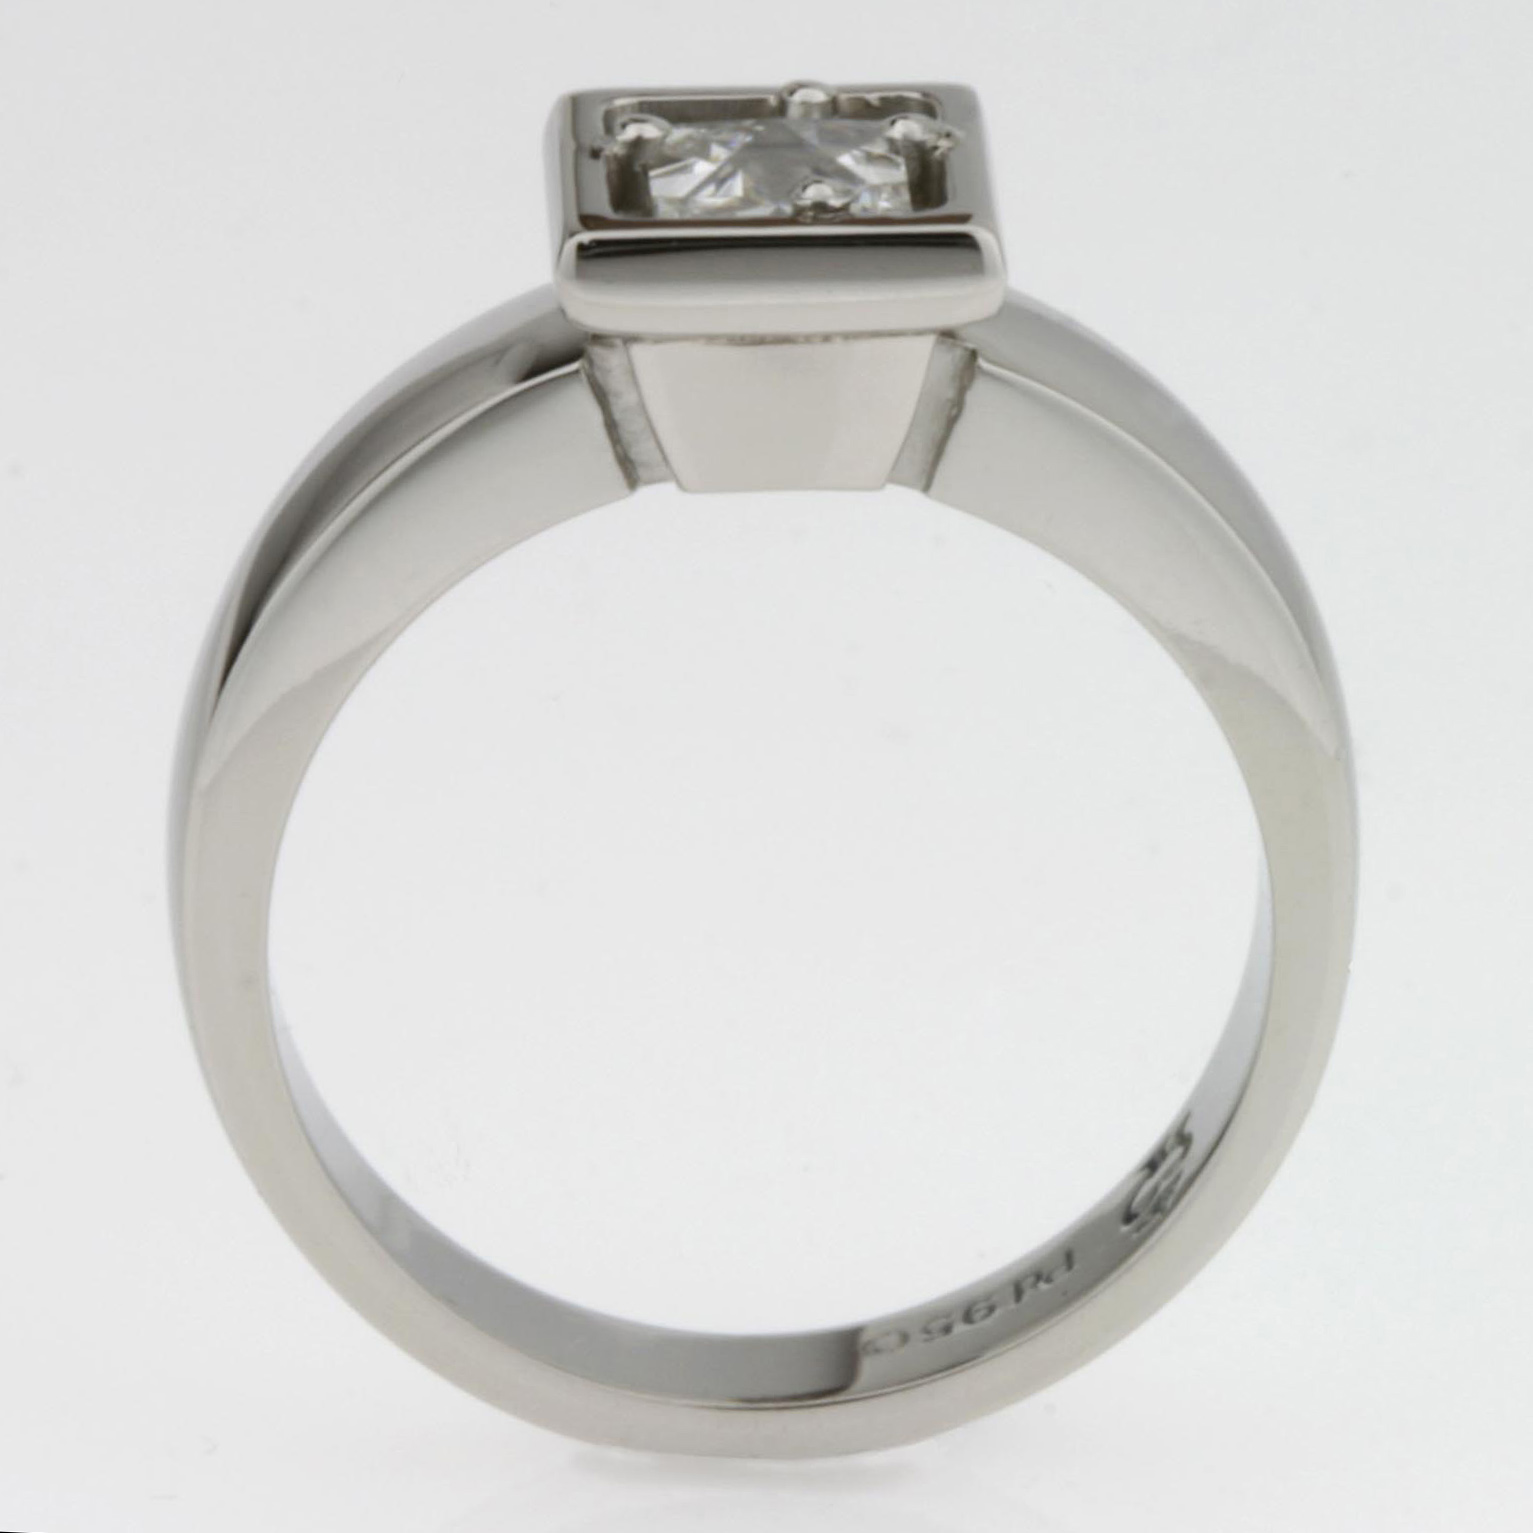 Handmade ladies palladium engagement ring featuring Context cut diamond